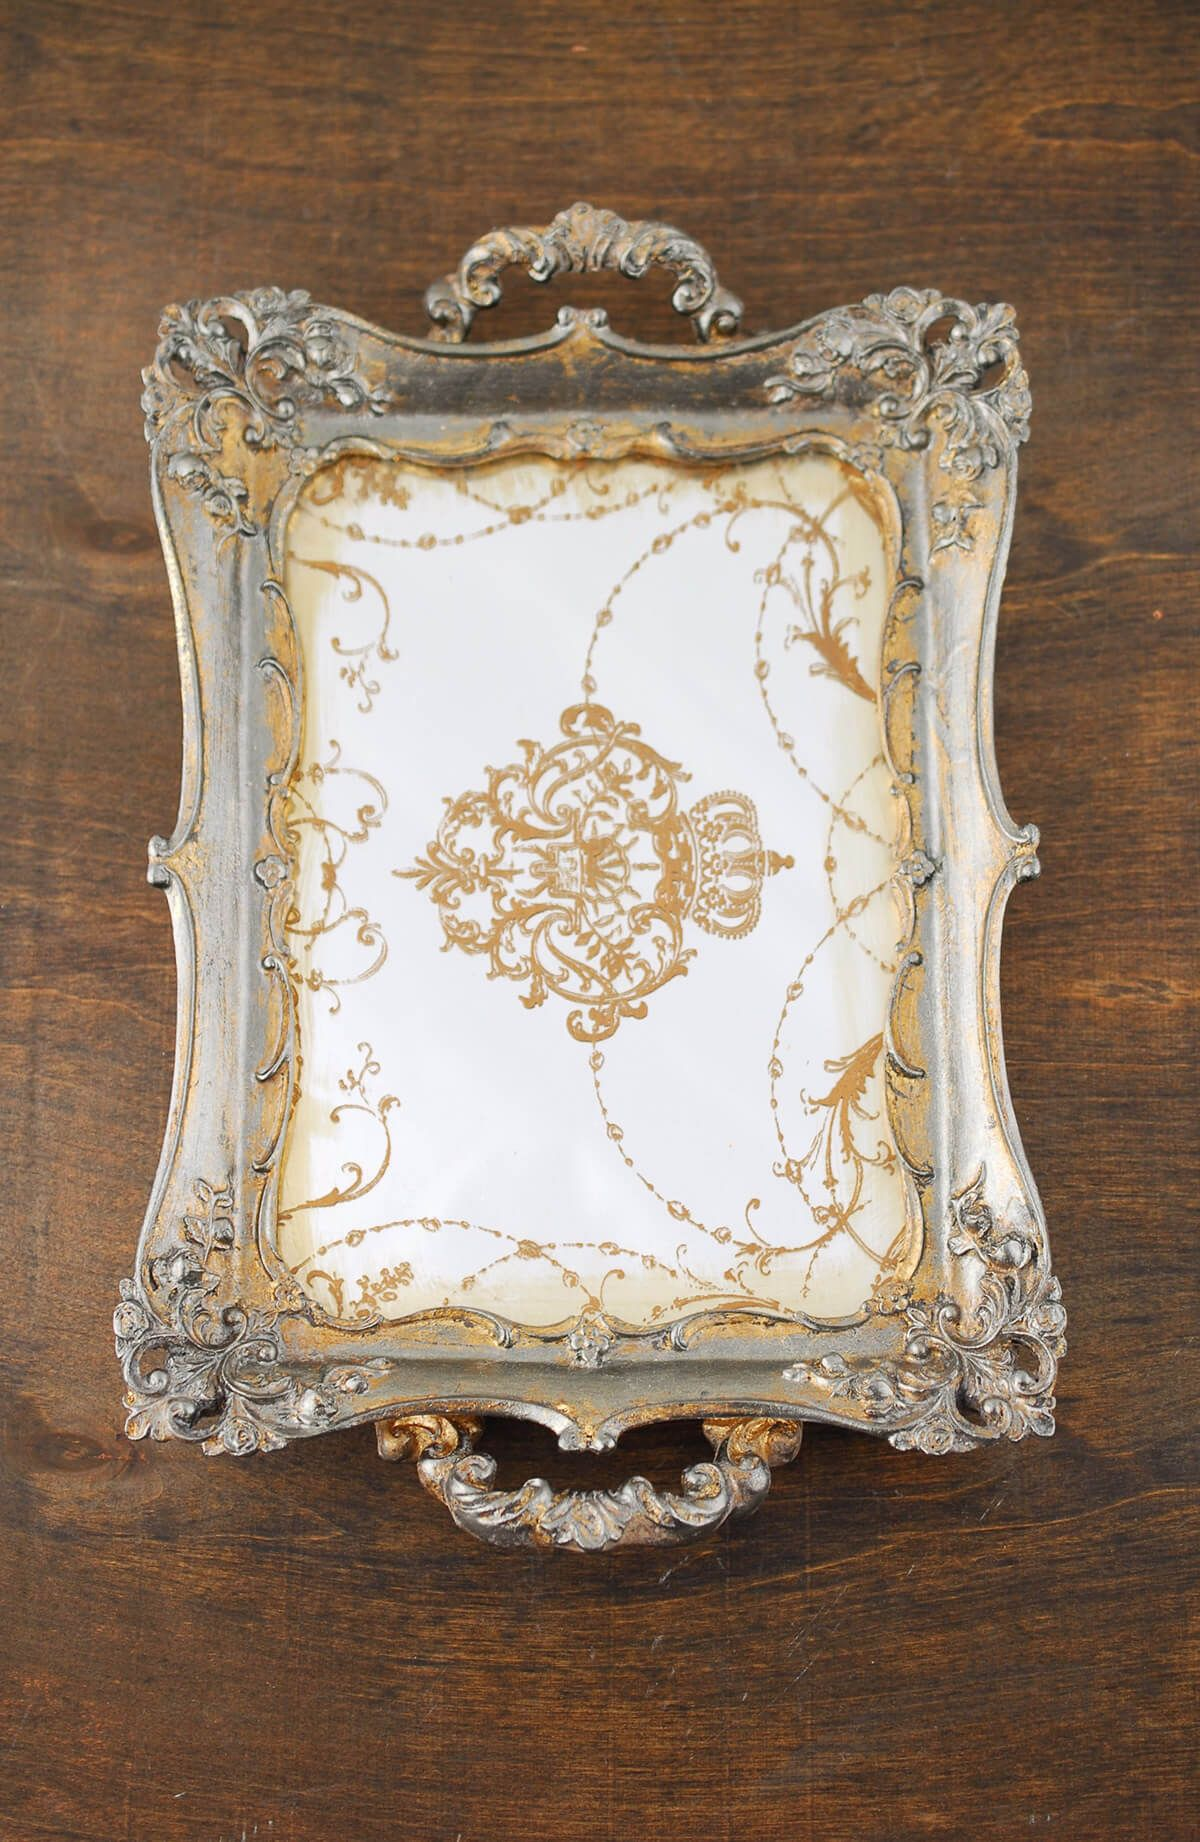 Antique style mirror tray | Mirror tray, Vintage mirrors and Trays